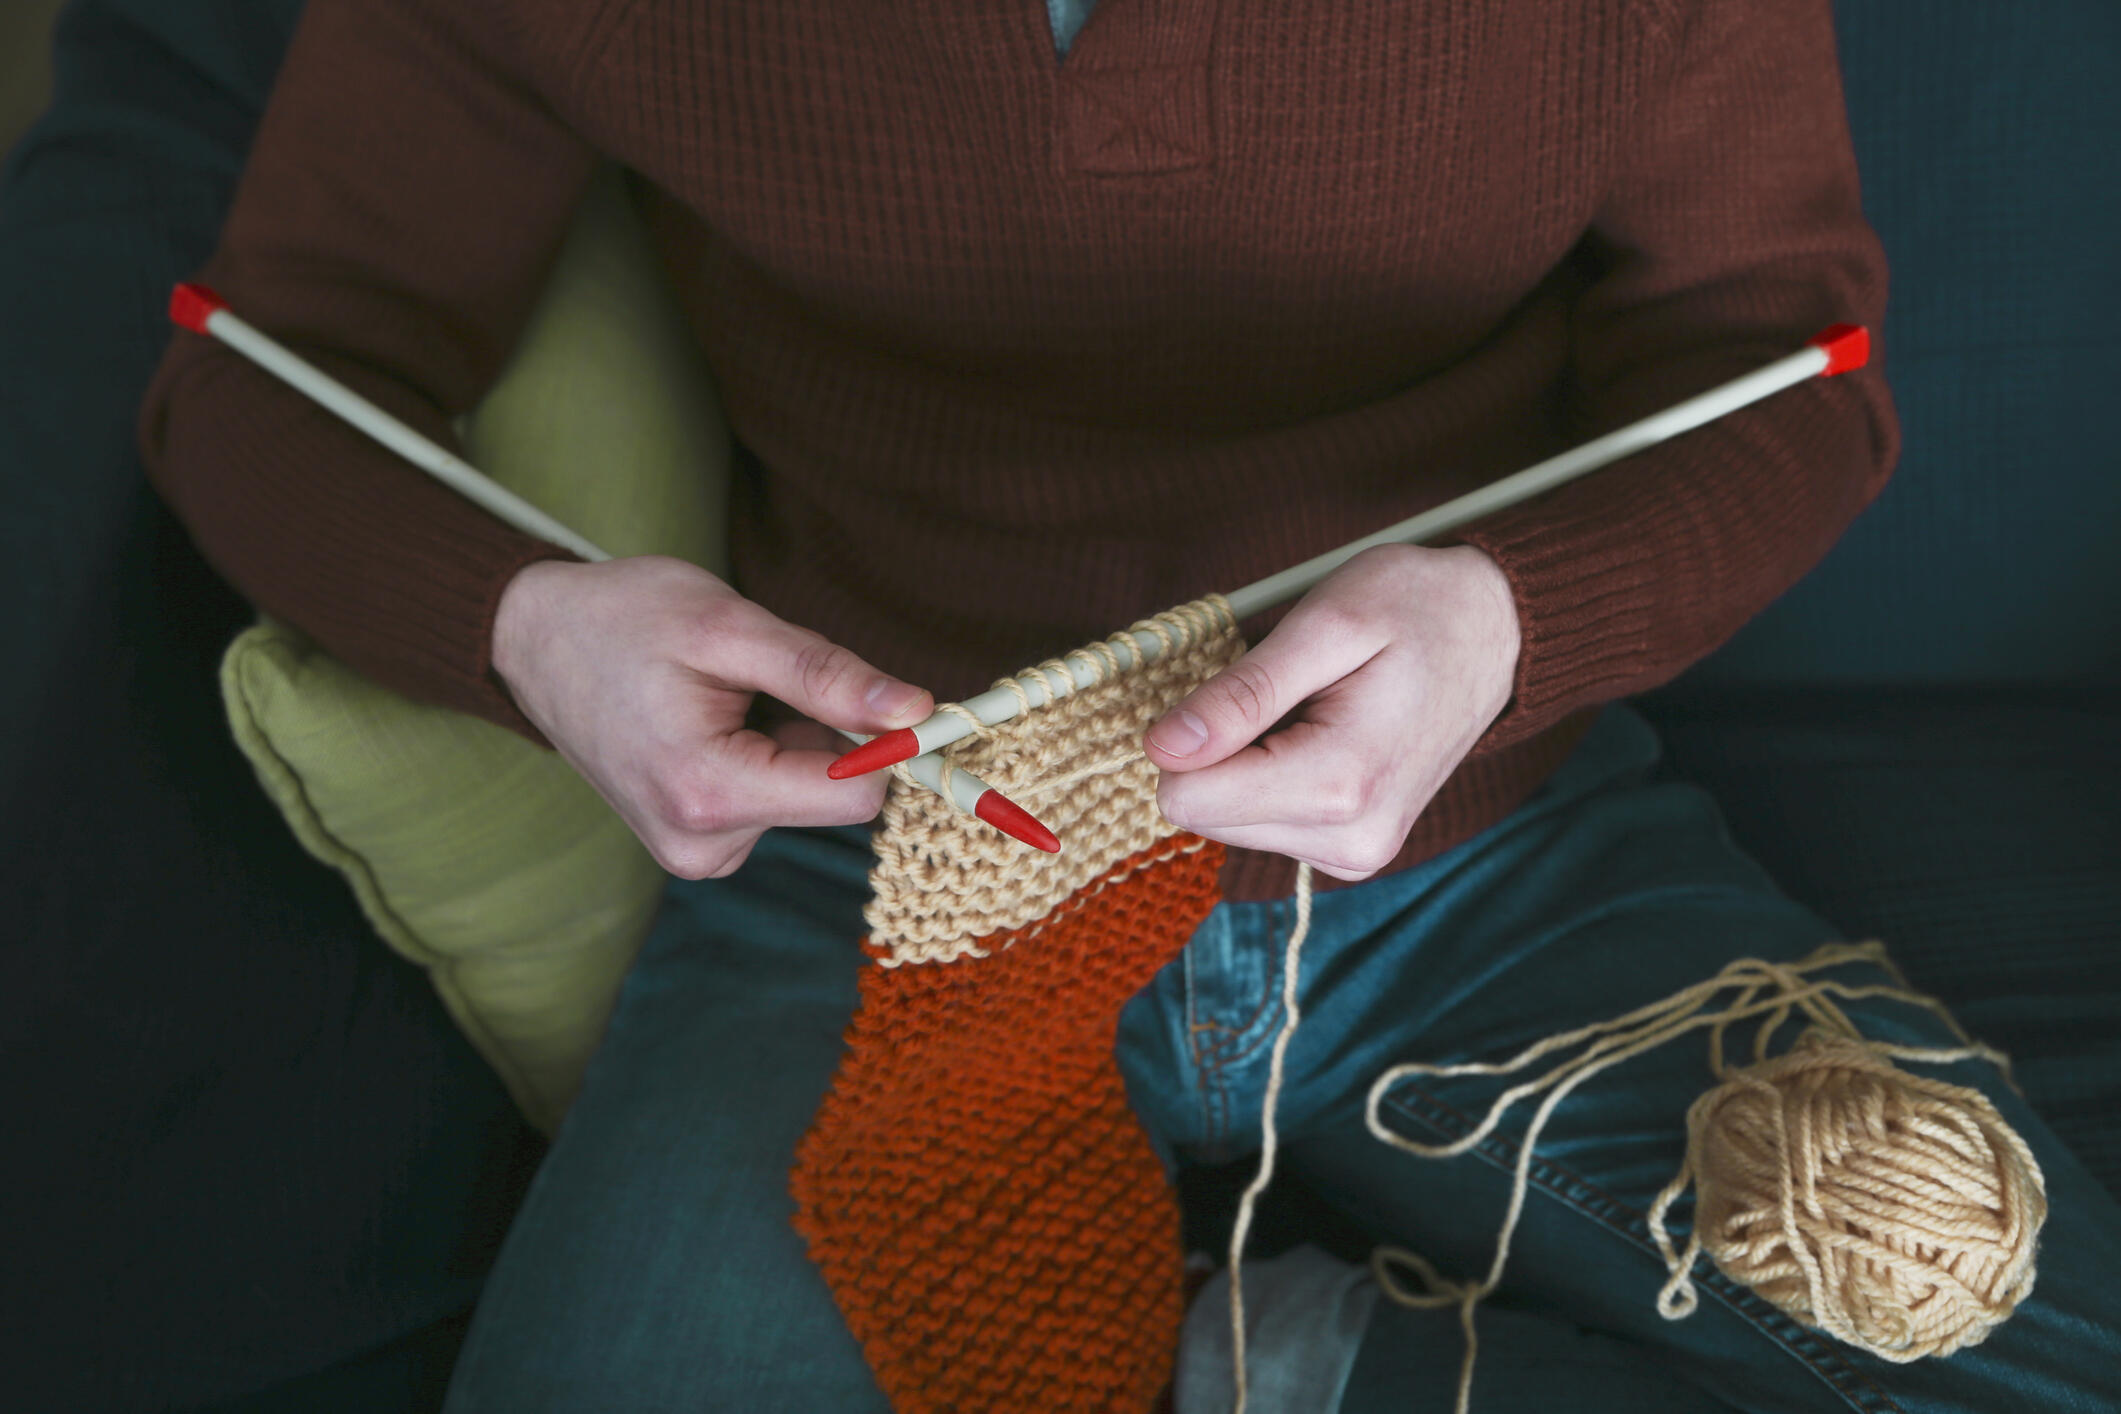 woman knitting red and cream-colored stocking for the holidays